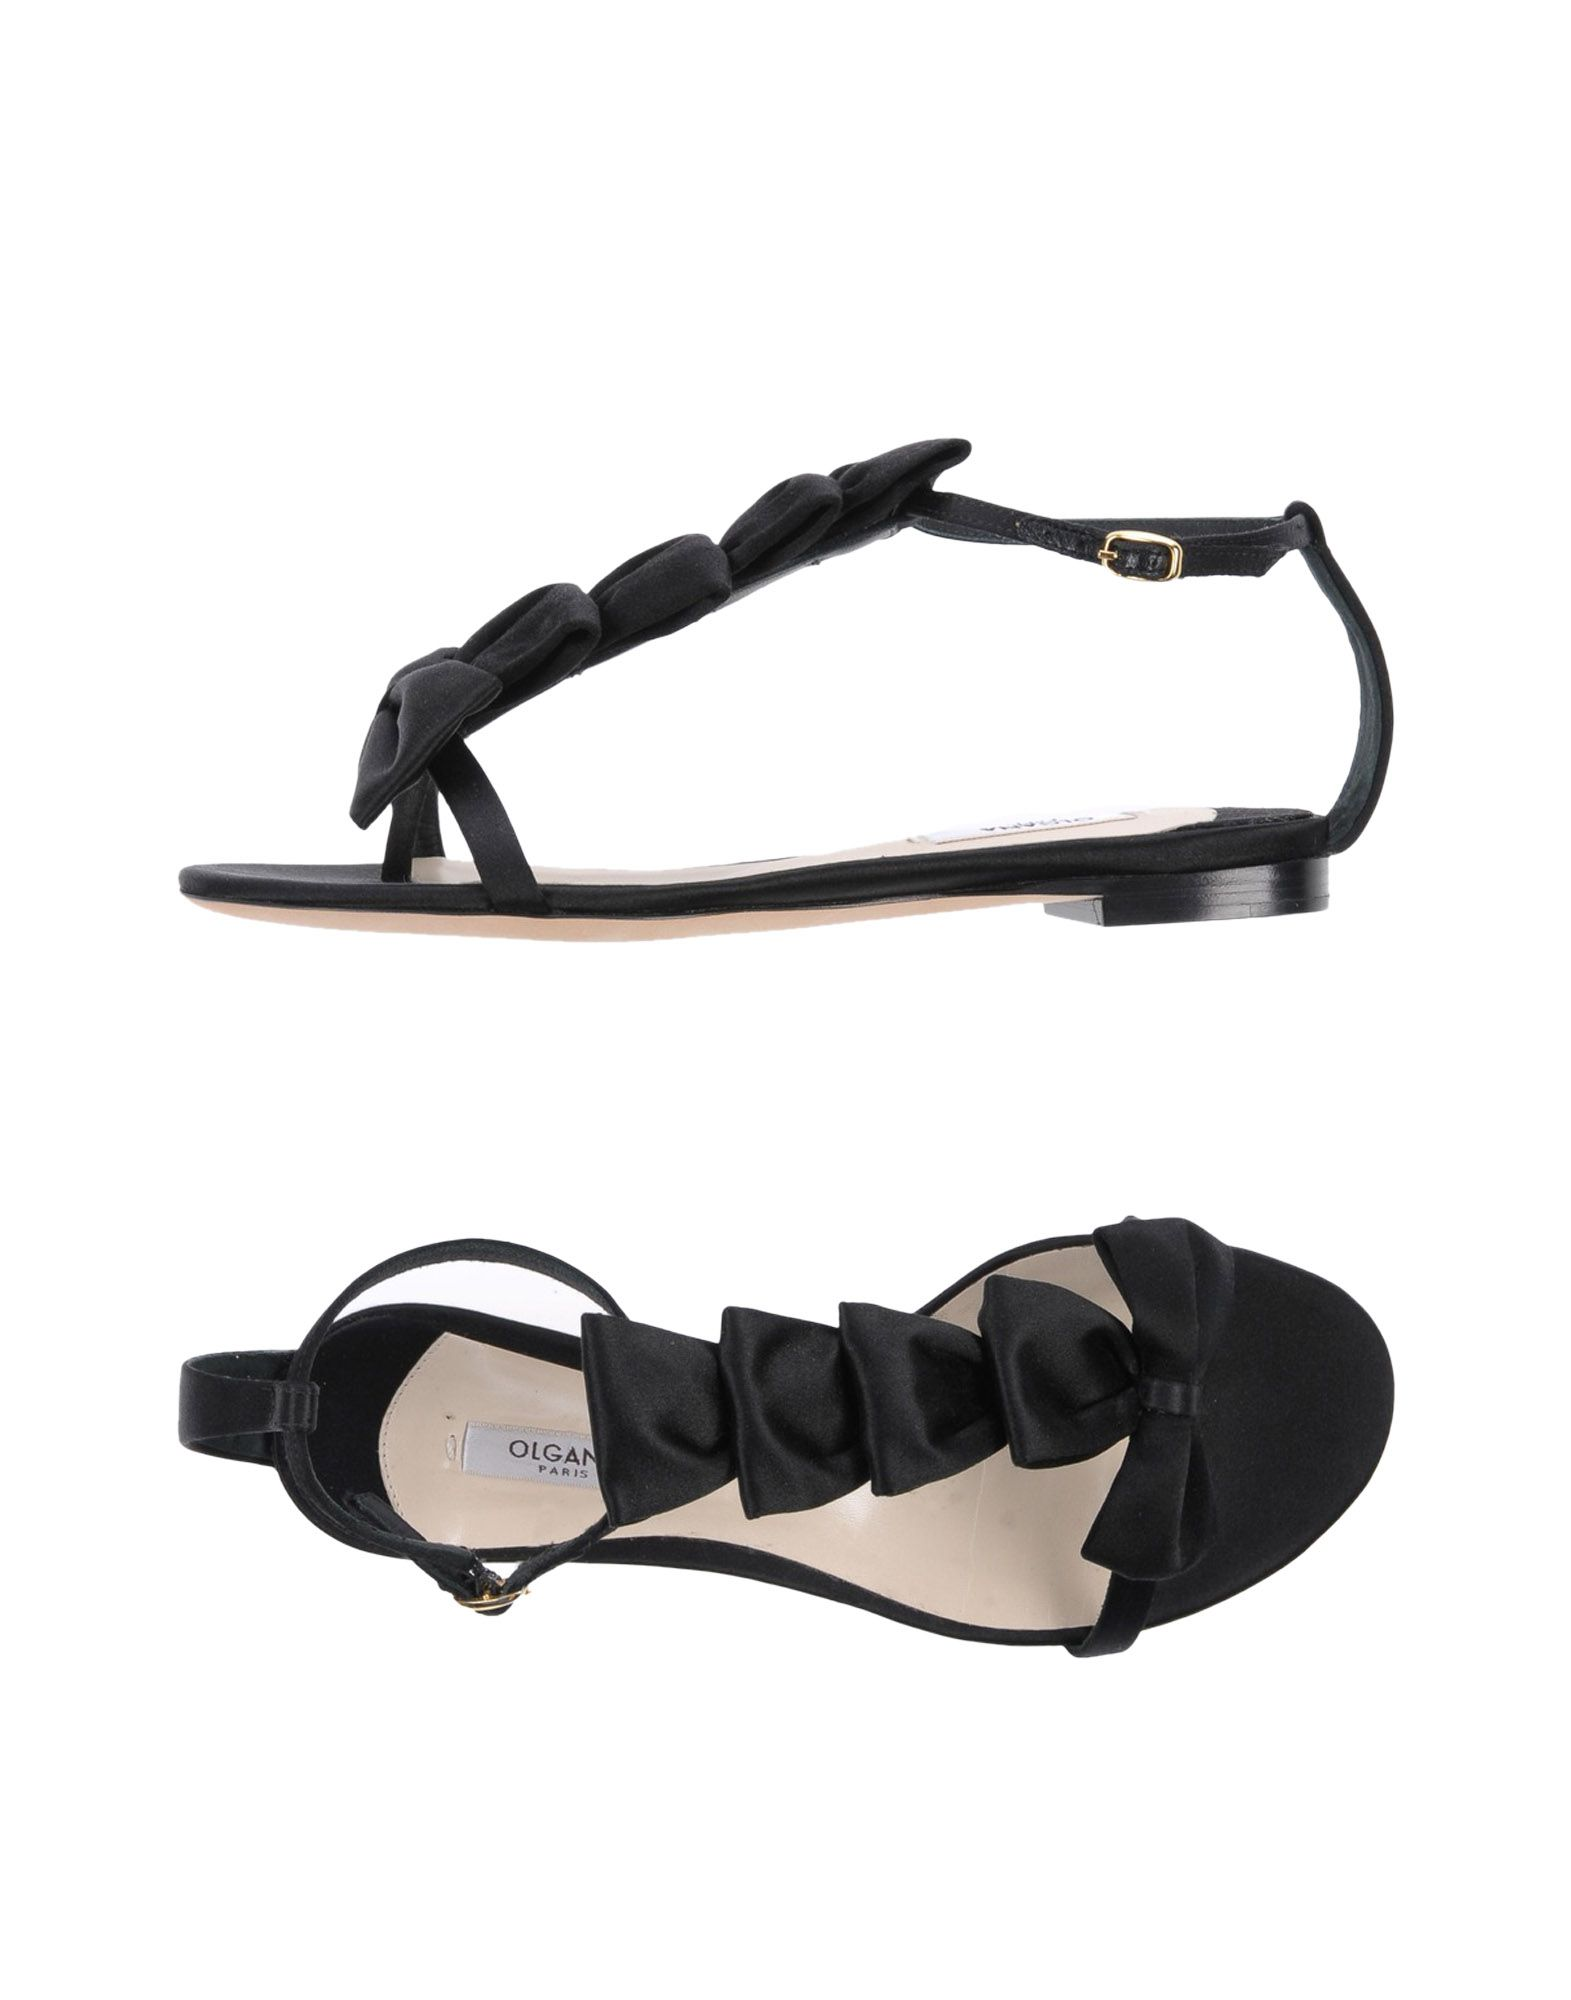 OLGANA PARIS Flip Flops in Black